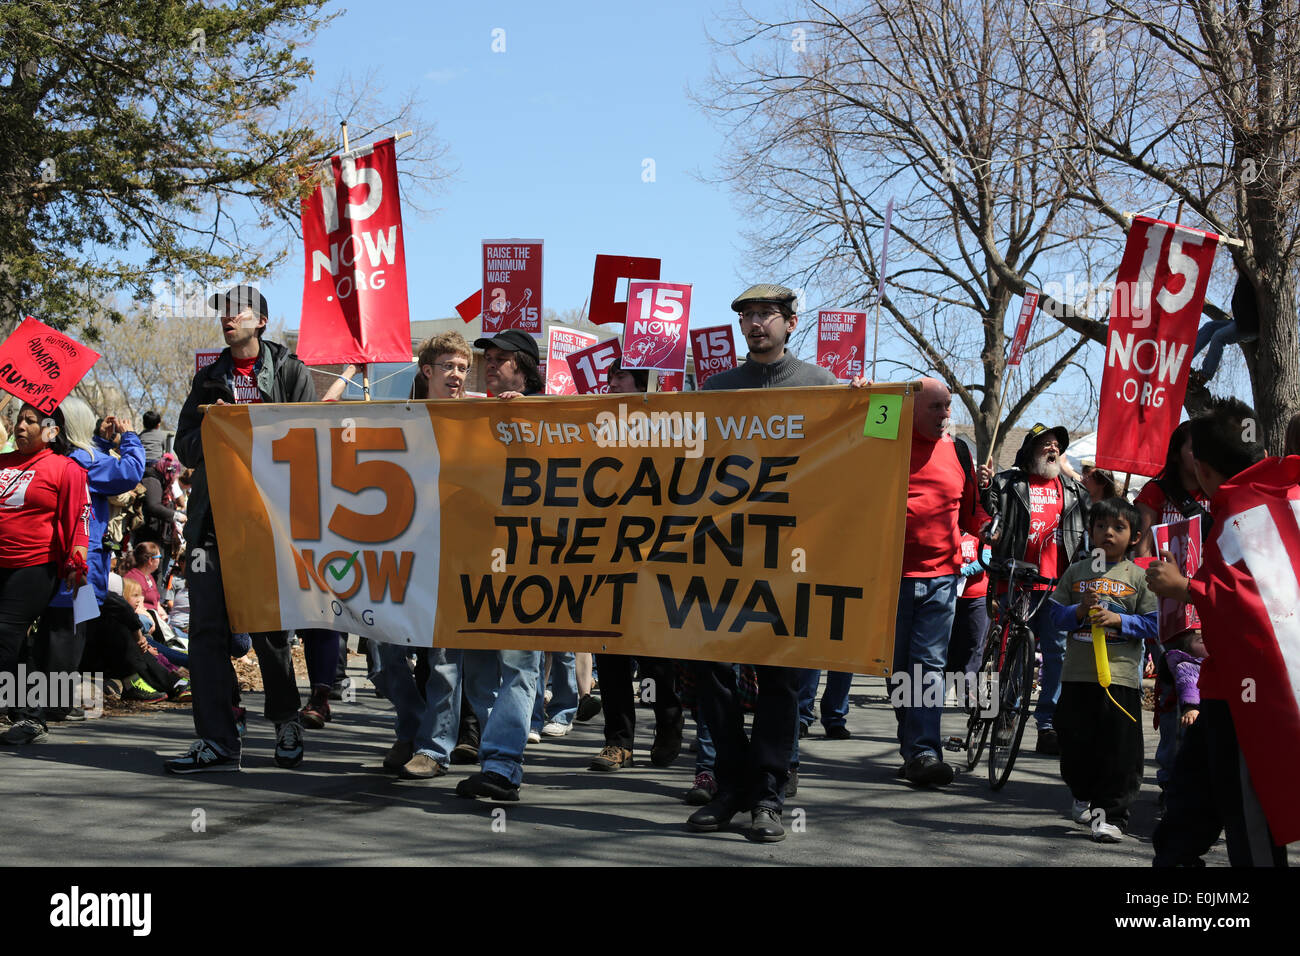 Protesters march for an increase in minimum wage. Stock Photo